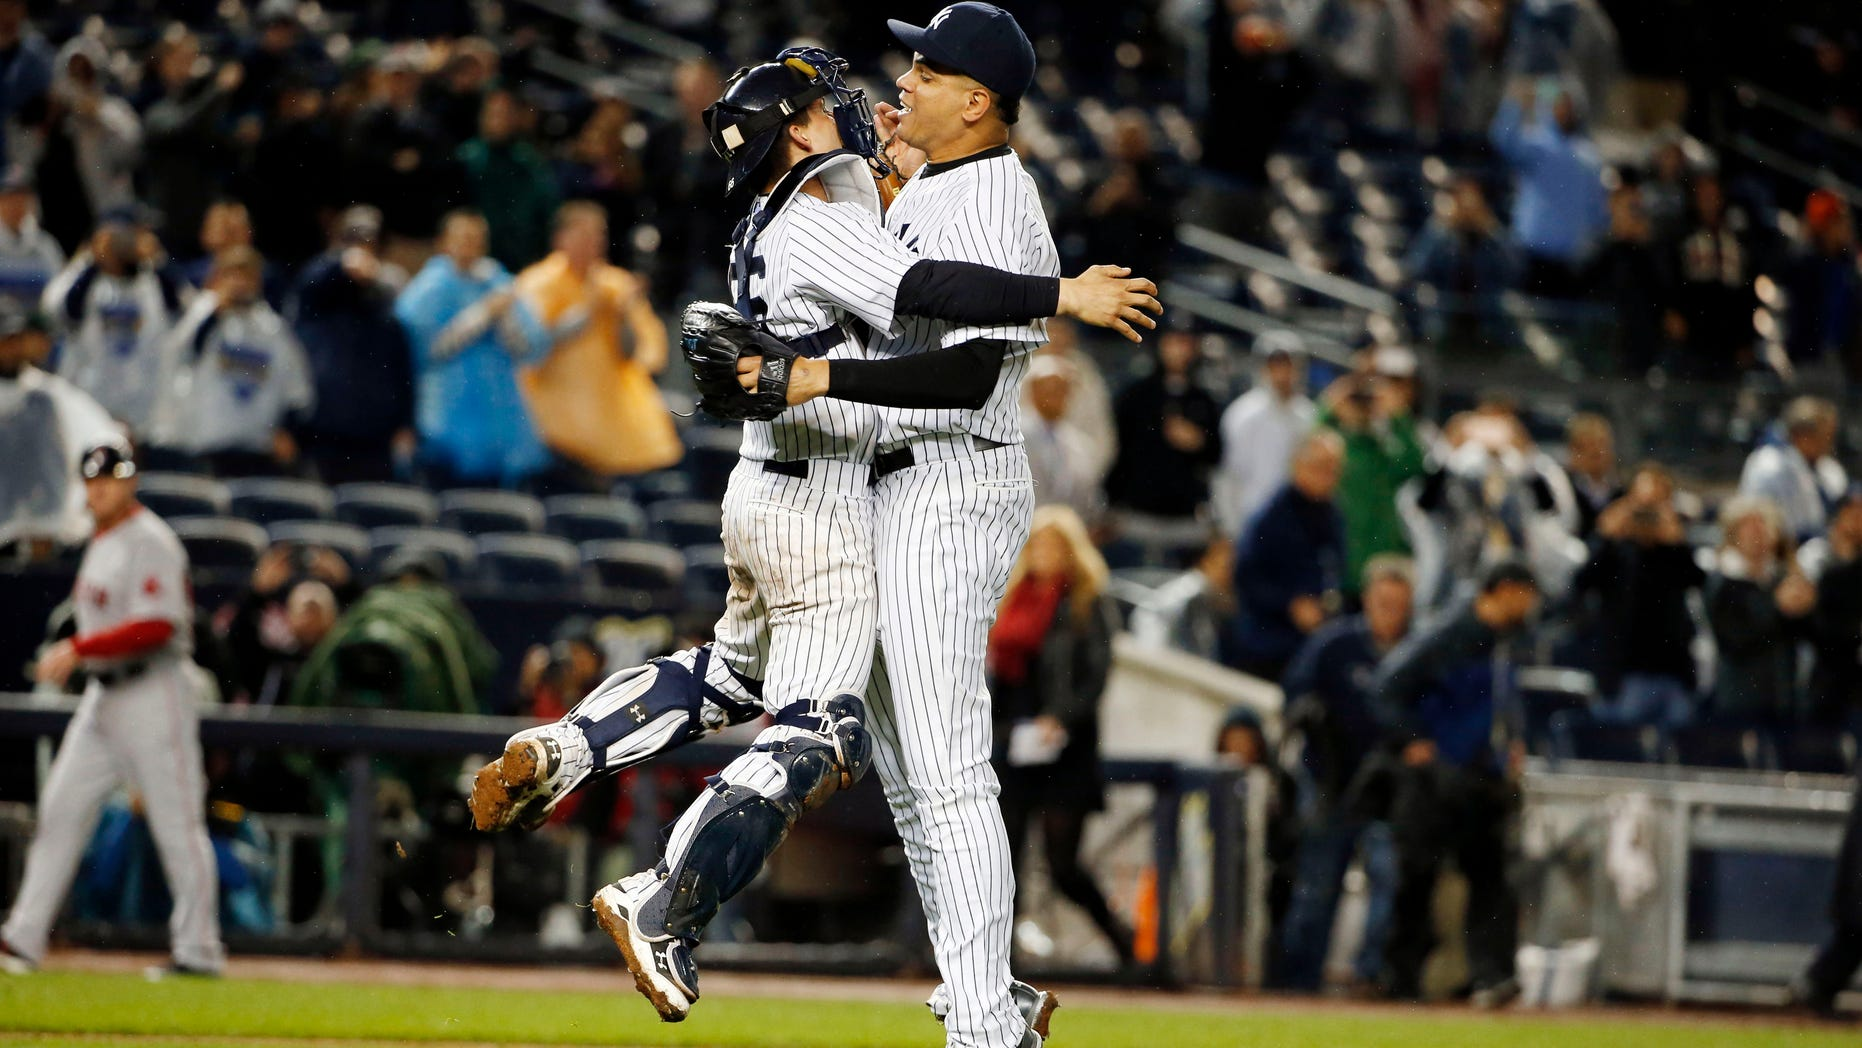 New York Yankees catcher John Ryan Murphy, left and New York Yankees pitcher Dellin Betances celebrate after the Yankees clinched a wild-car berth in the playoffs by defeating the Boston Red Sox 4-1 in a baseball game in New York, Thursday, Oct. 1, 2015. (AP Photo/Kathy Willens)